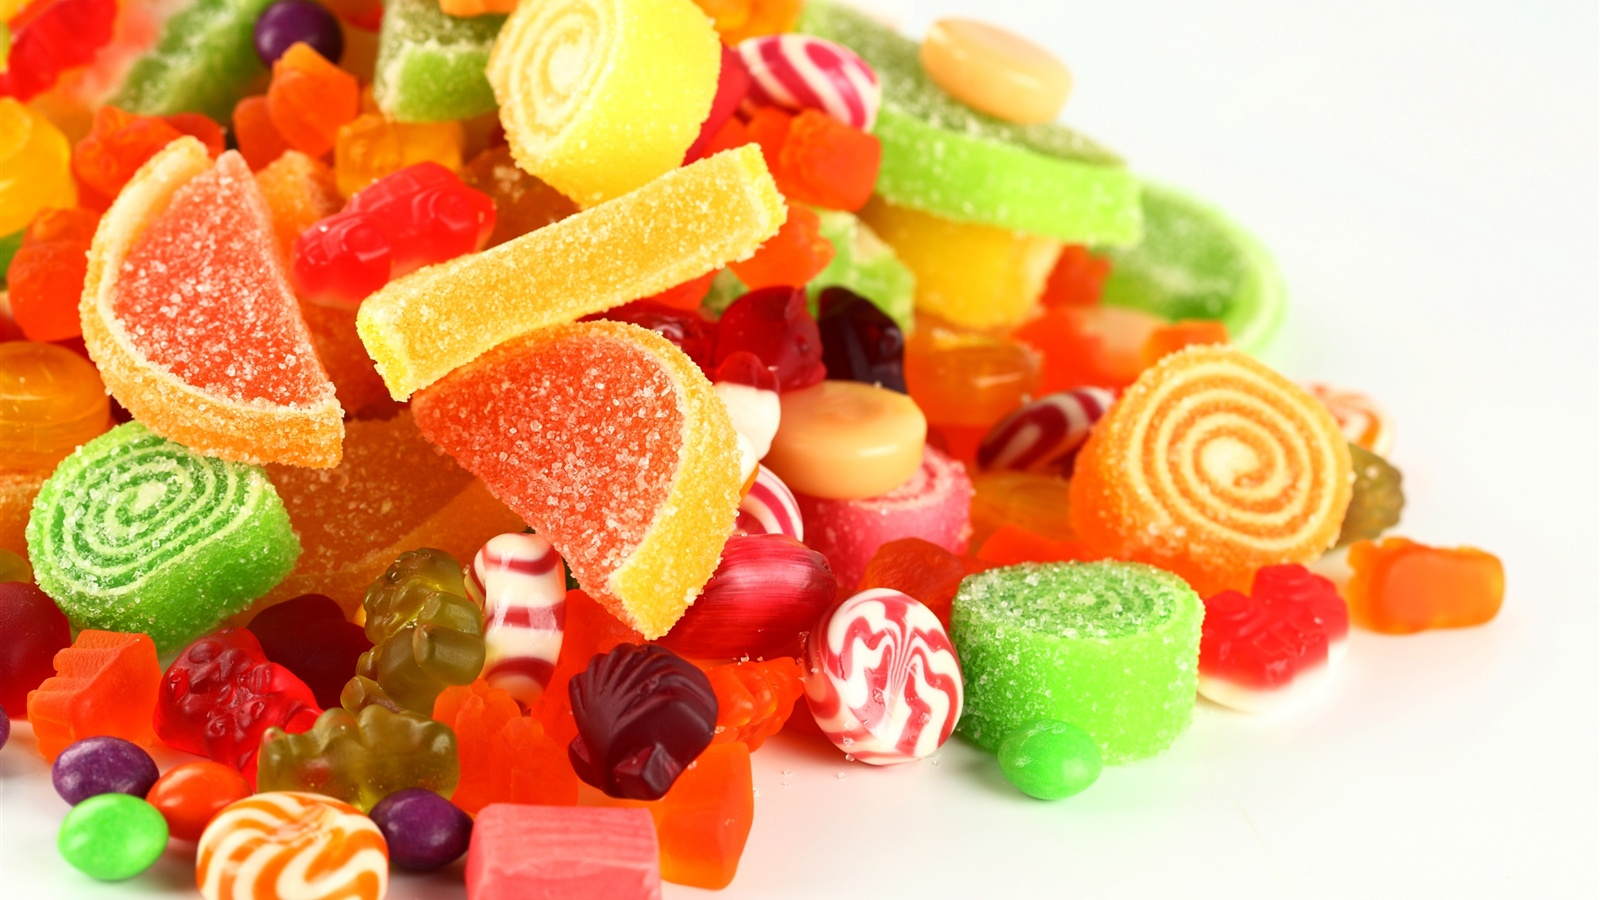 The-dazzling-colorful-candy-fruit-sugar_1600x900